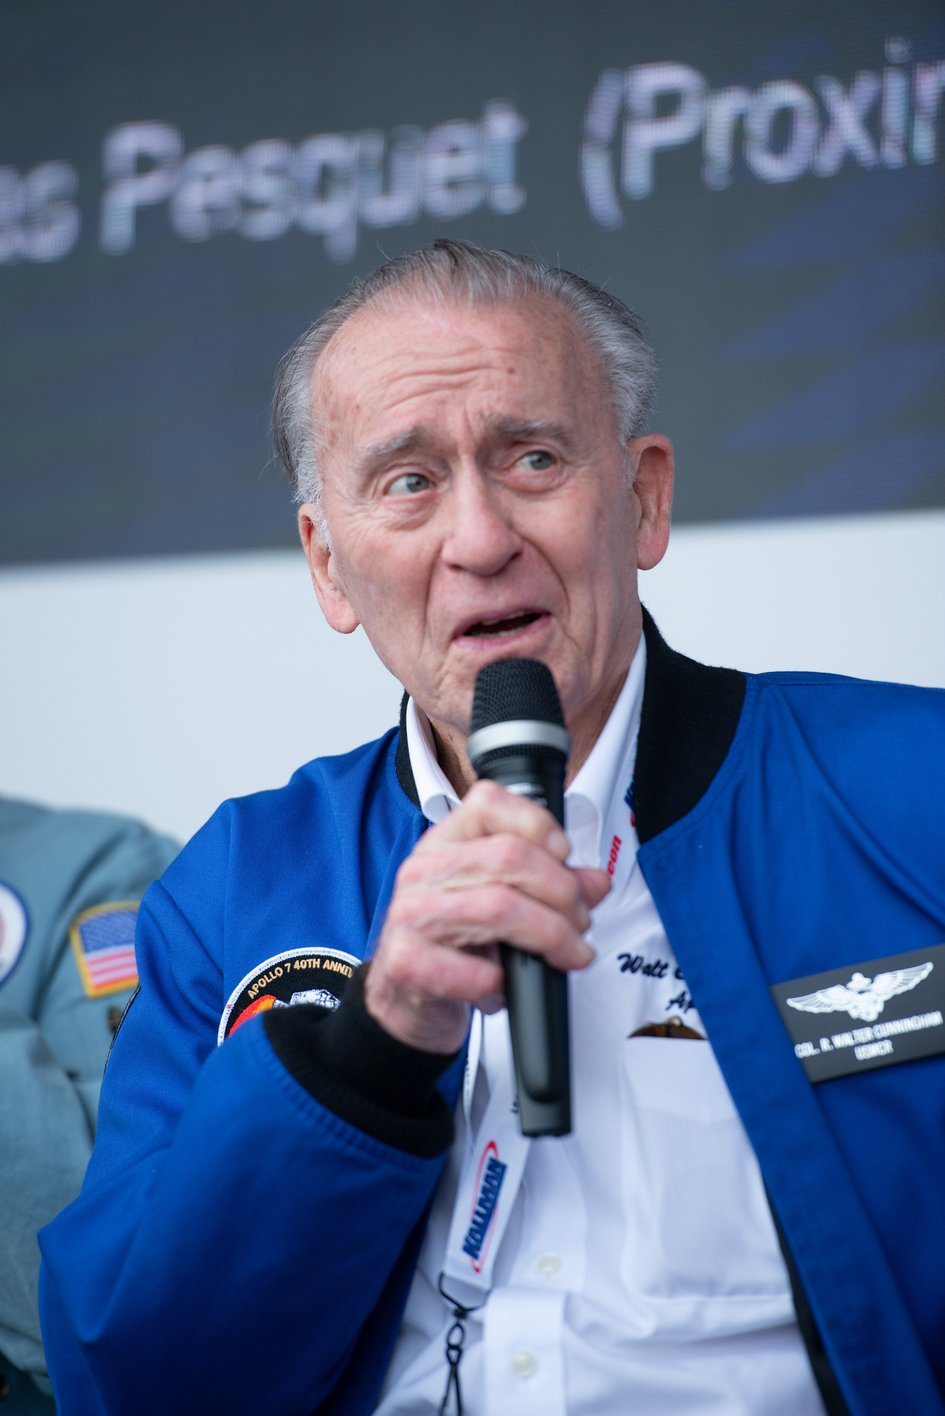 NASA Apollo astronaut Walt Cunningham on the ESA stand at Le Bourget